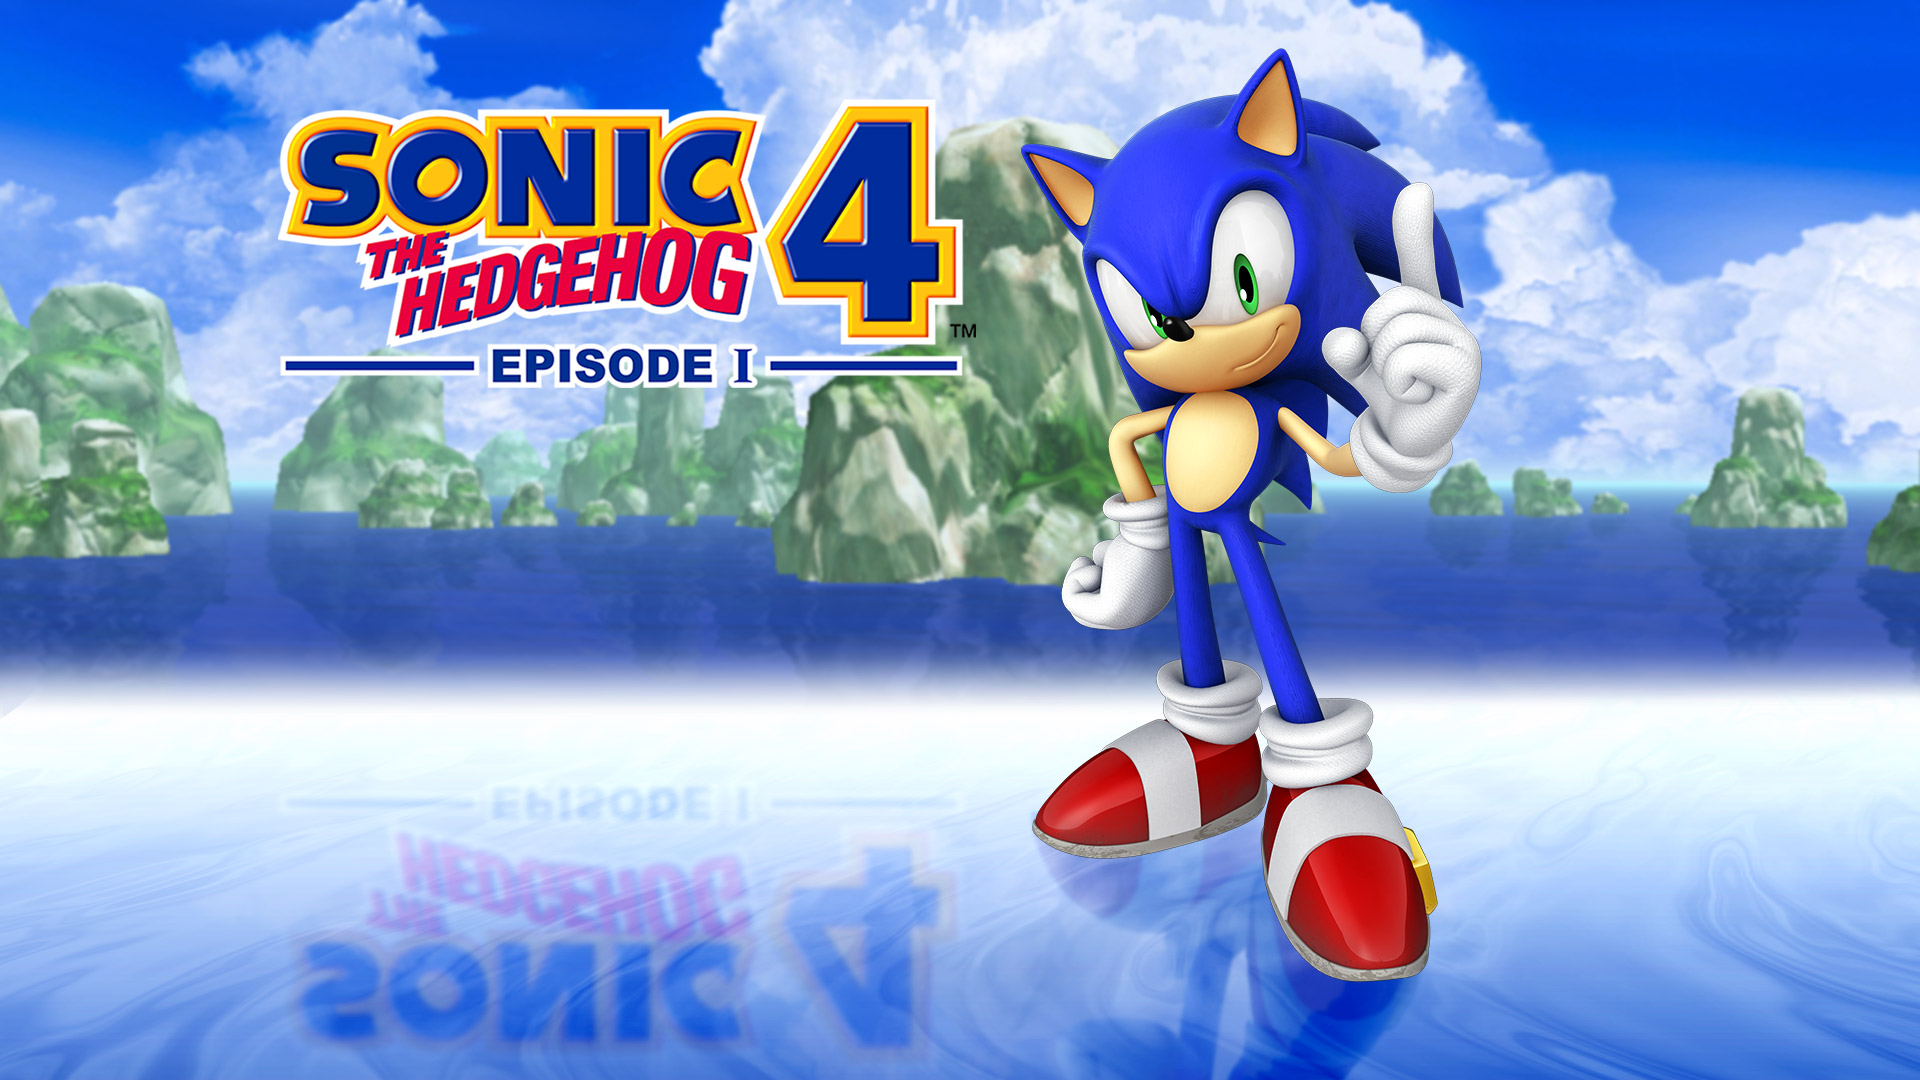 Free Sonic the Hedgehog 4: Episode I Wallpaper in 1920x1080